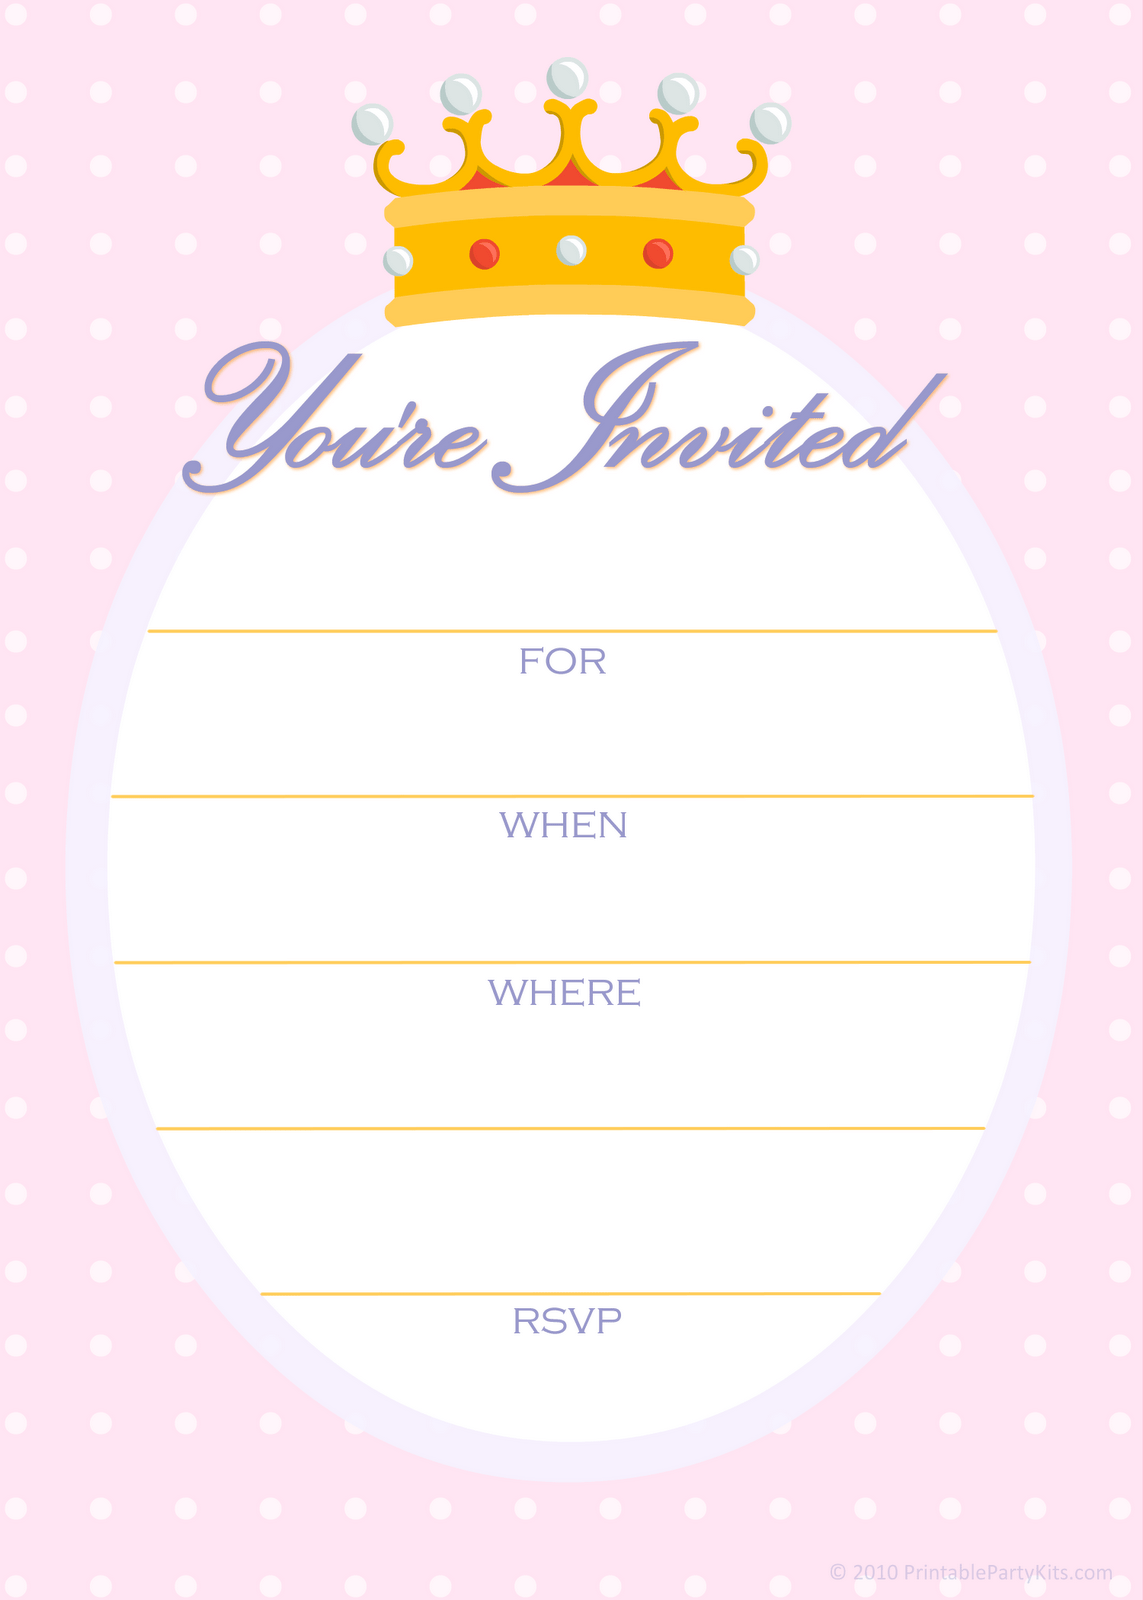 invitation for party template - 28 images - 15 party invitations ...